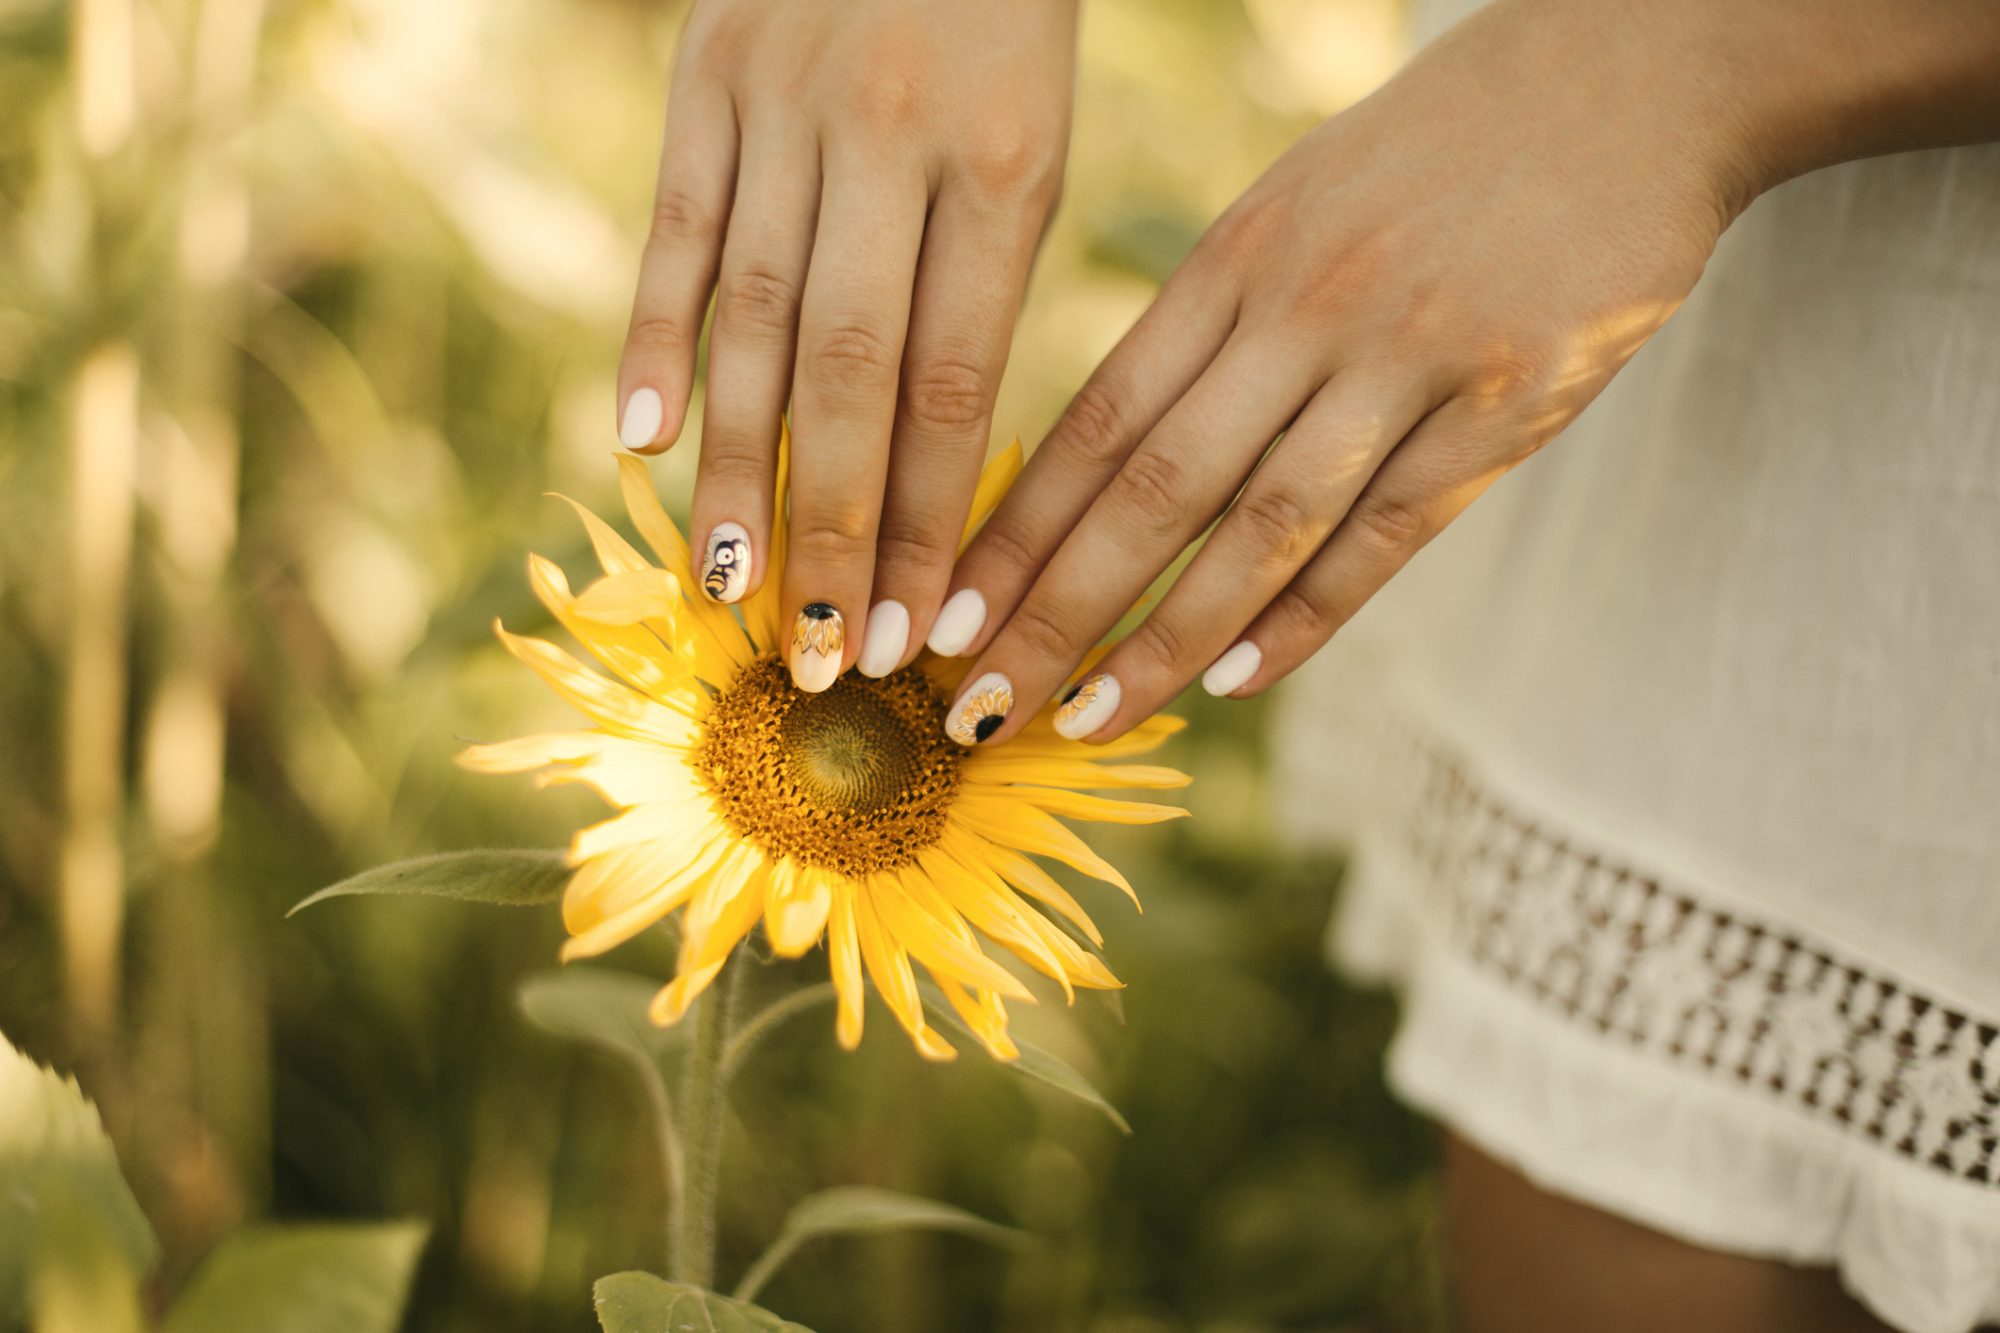 Sunflower nails trend